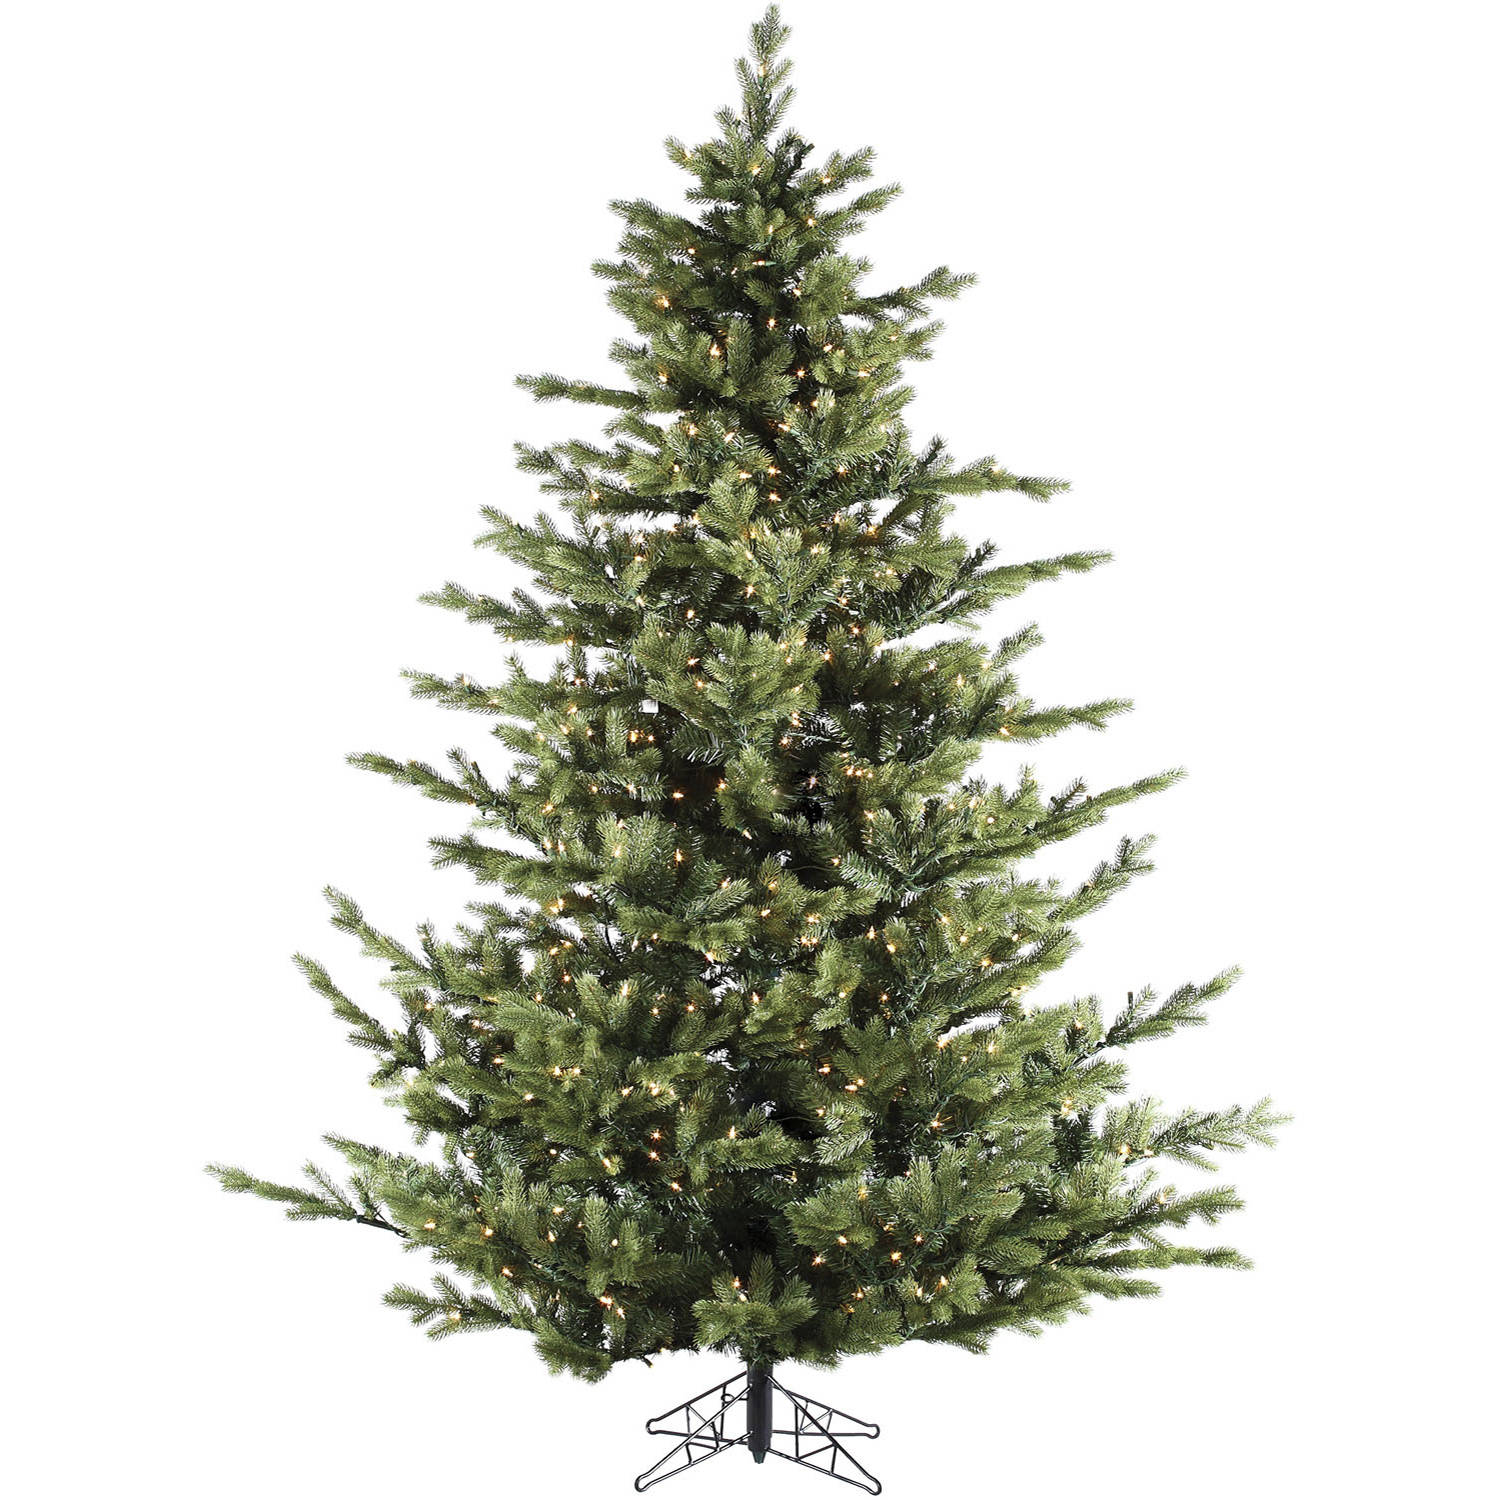 Small artificial christmas trees with led lights - Fraser Hill Farm Pre Lit 7 5 Foxtail Pine Artificial Christmas Tree With Multi Color Led String Lighting Walmart Com